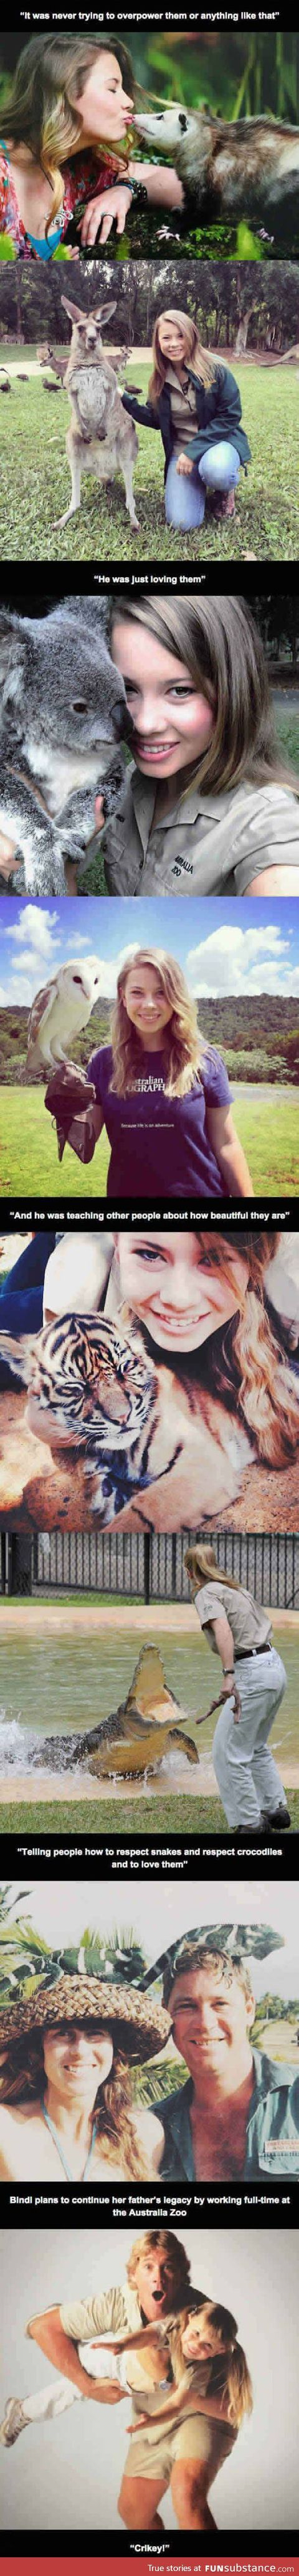 Bindi Irwin is all grown up!.....and following in her dad's footsteps, with the same passion that he had for life! V.@ E.